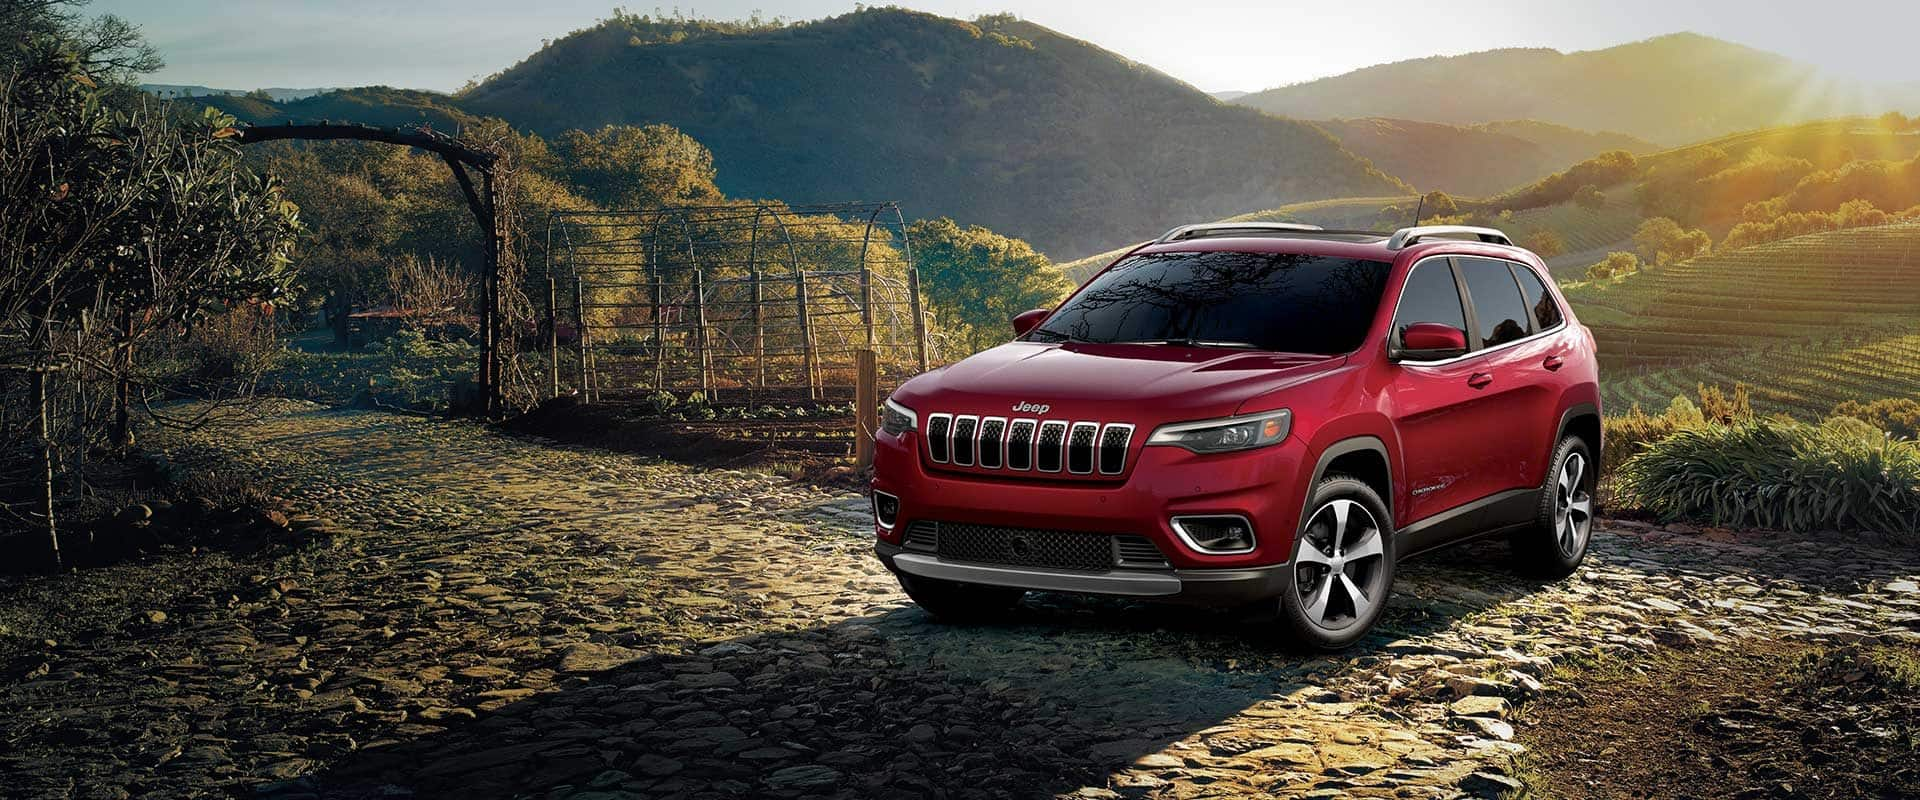 New Jeep Cherokee >> 2019 Jeep Cherokee Discover New Adventures In Style